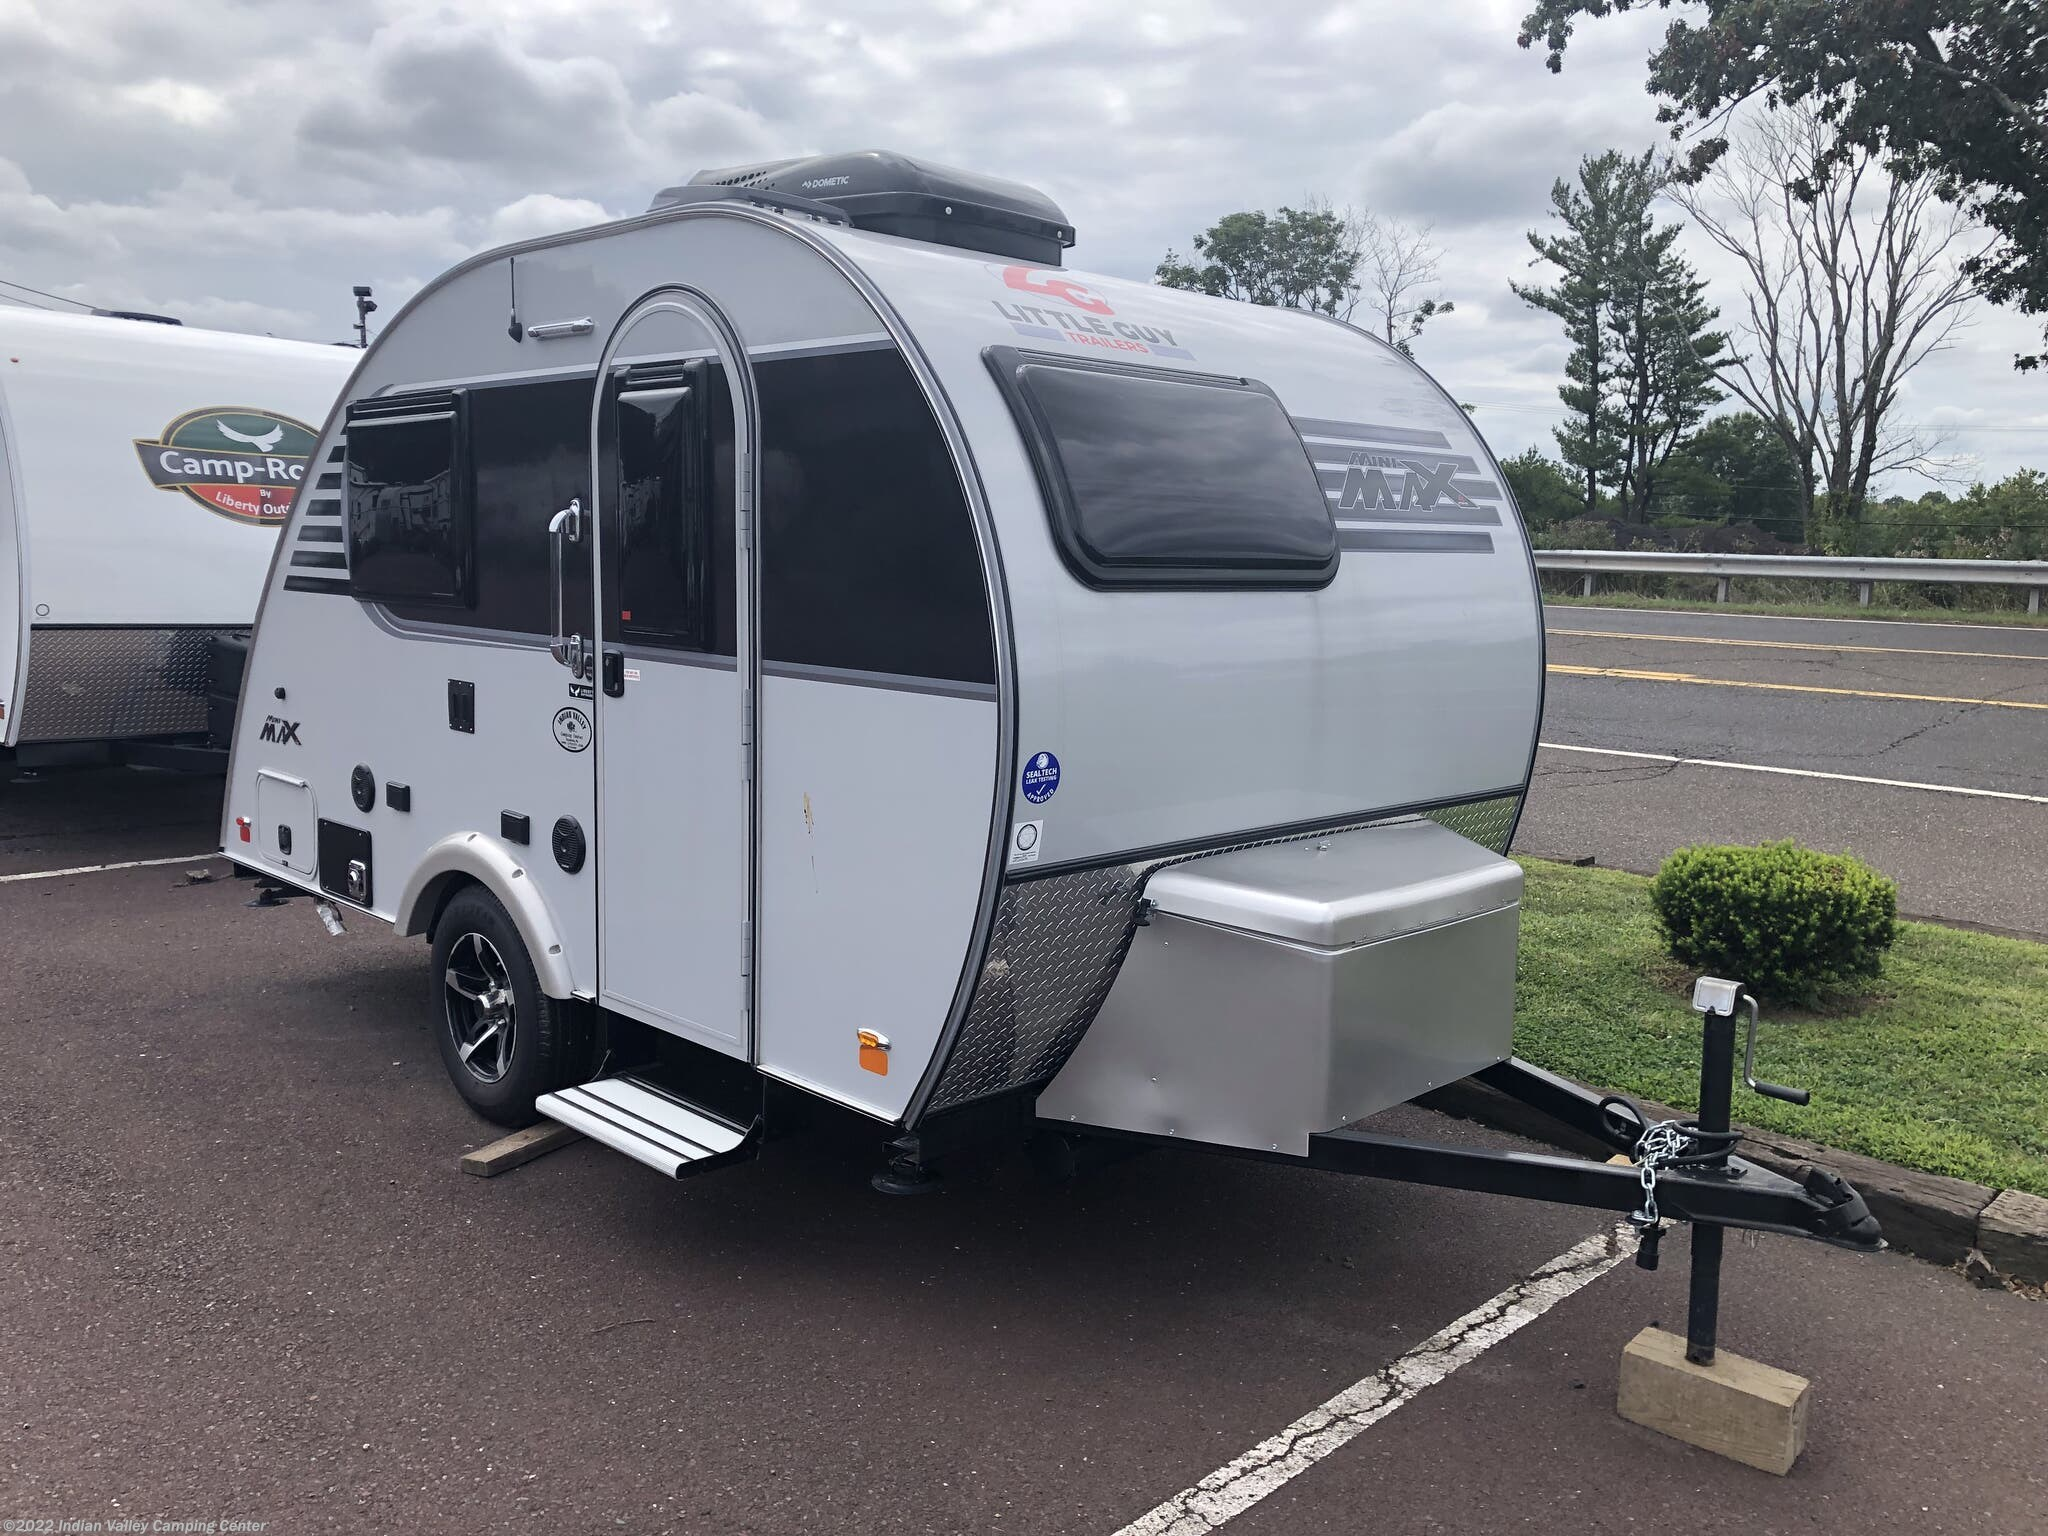 Travel Trailers For Sale In Pa >> 2019 Little Guy Trailers Rv Mini Max For Sale In Souderton Pa 18964 12jk1